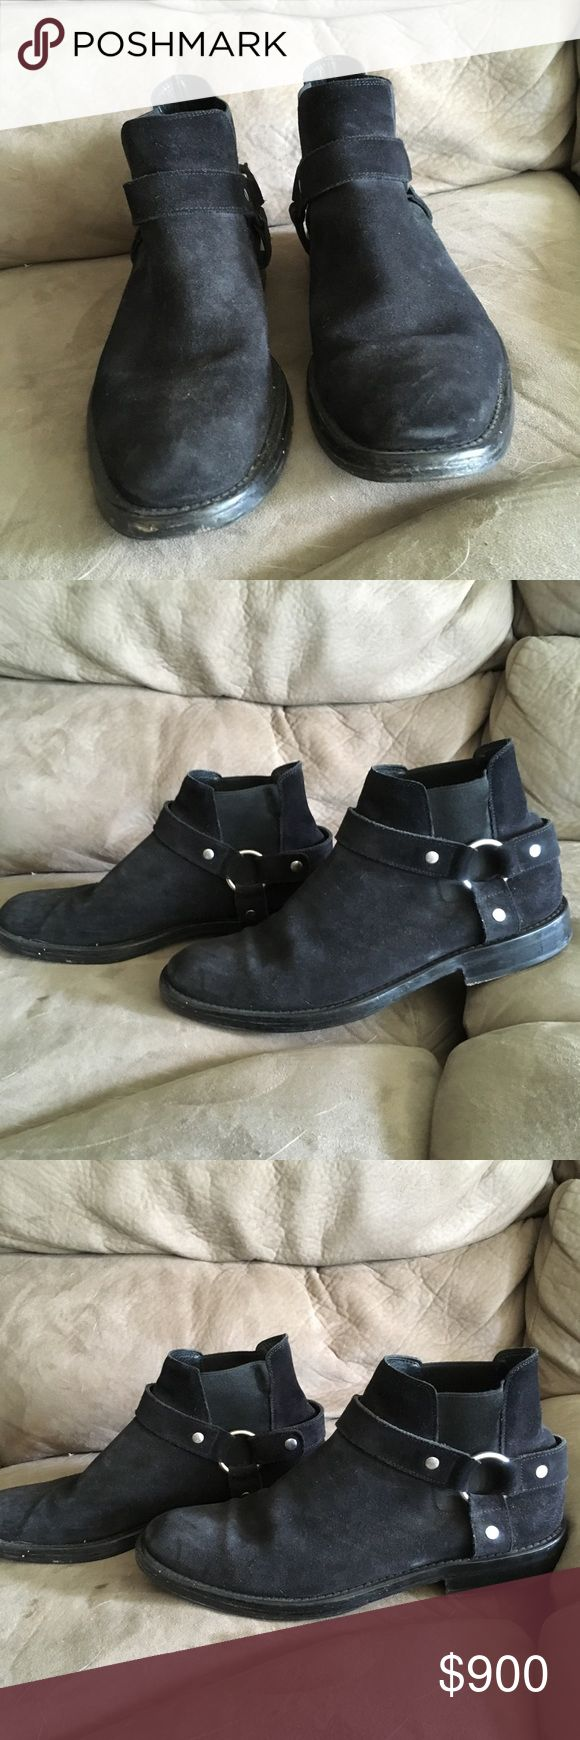 Saint Laurent paris black suede harness boot Worn lots, but tons of life left. Size 45 Recently got sole guards added on. Harness boots similar to the SLP wyatts. Made in Spain, before they switched to Italy again. Sold as is. Open to offers.  All sales final. No exceptions Not in a major rush to sell. Only if the price is right. Saint Laurent Shoes Boots